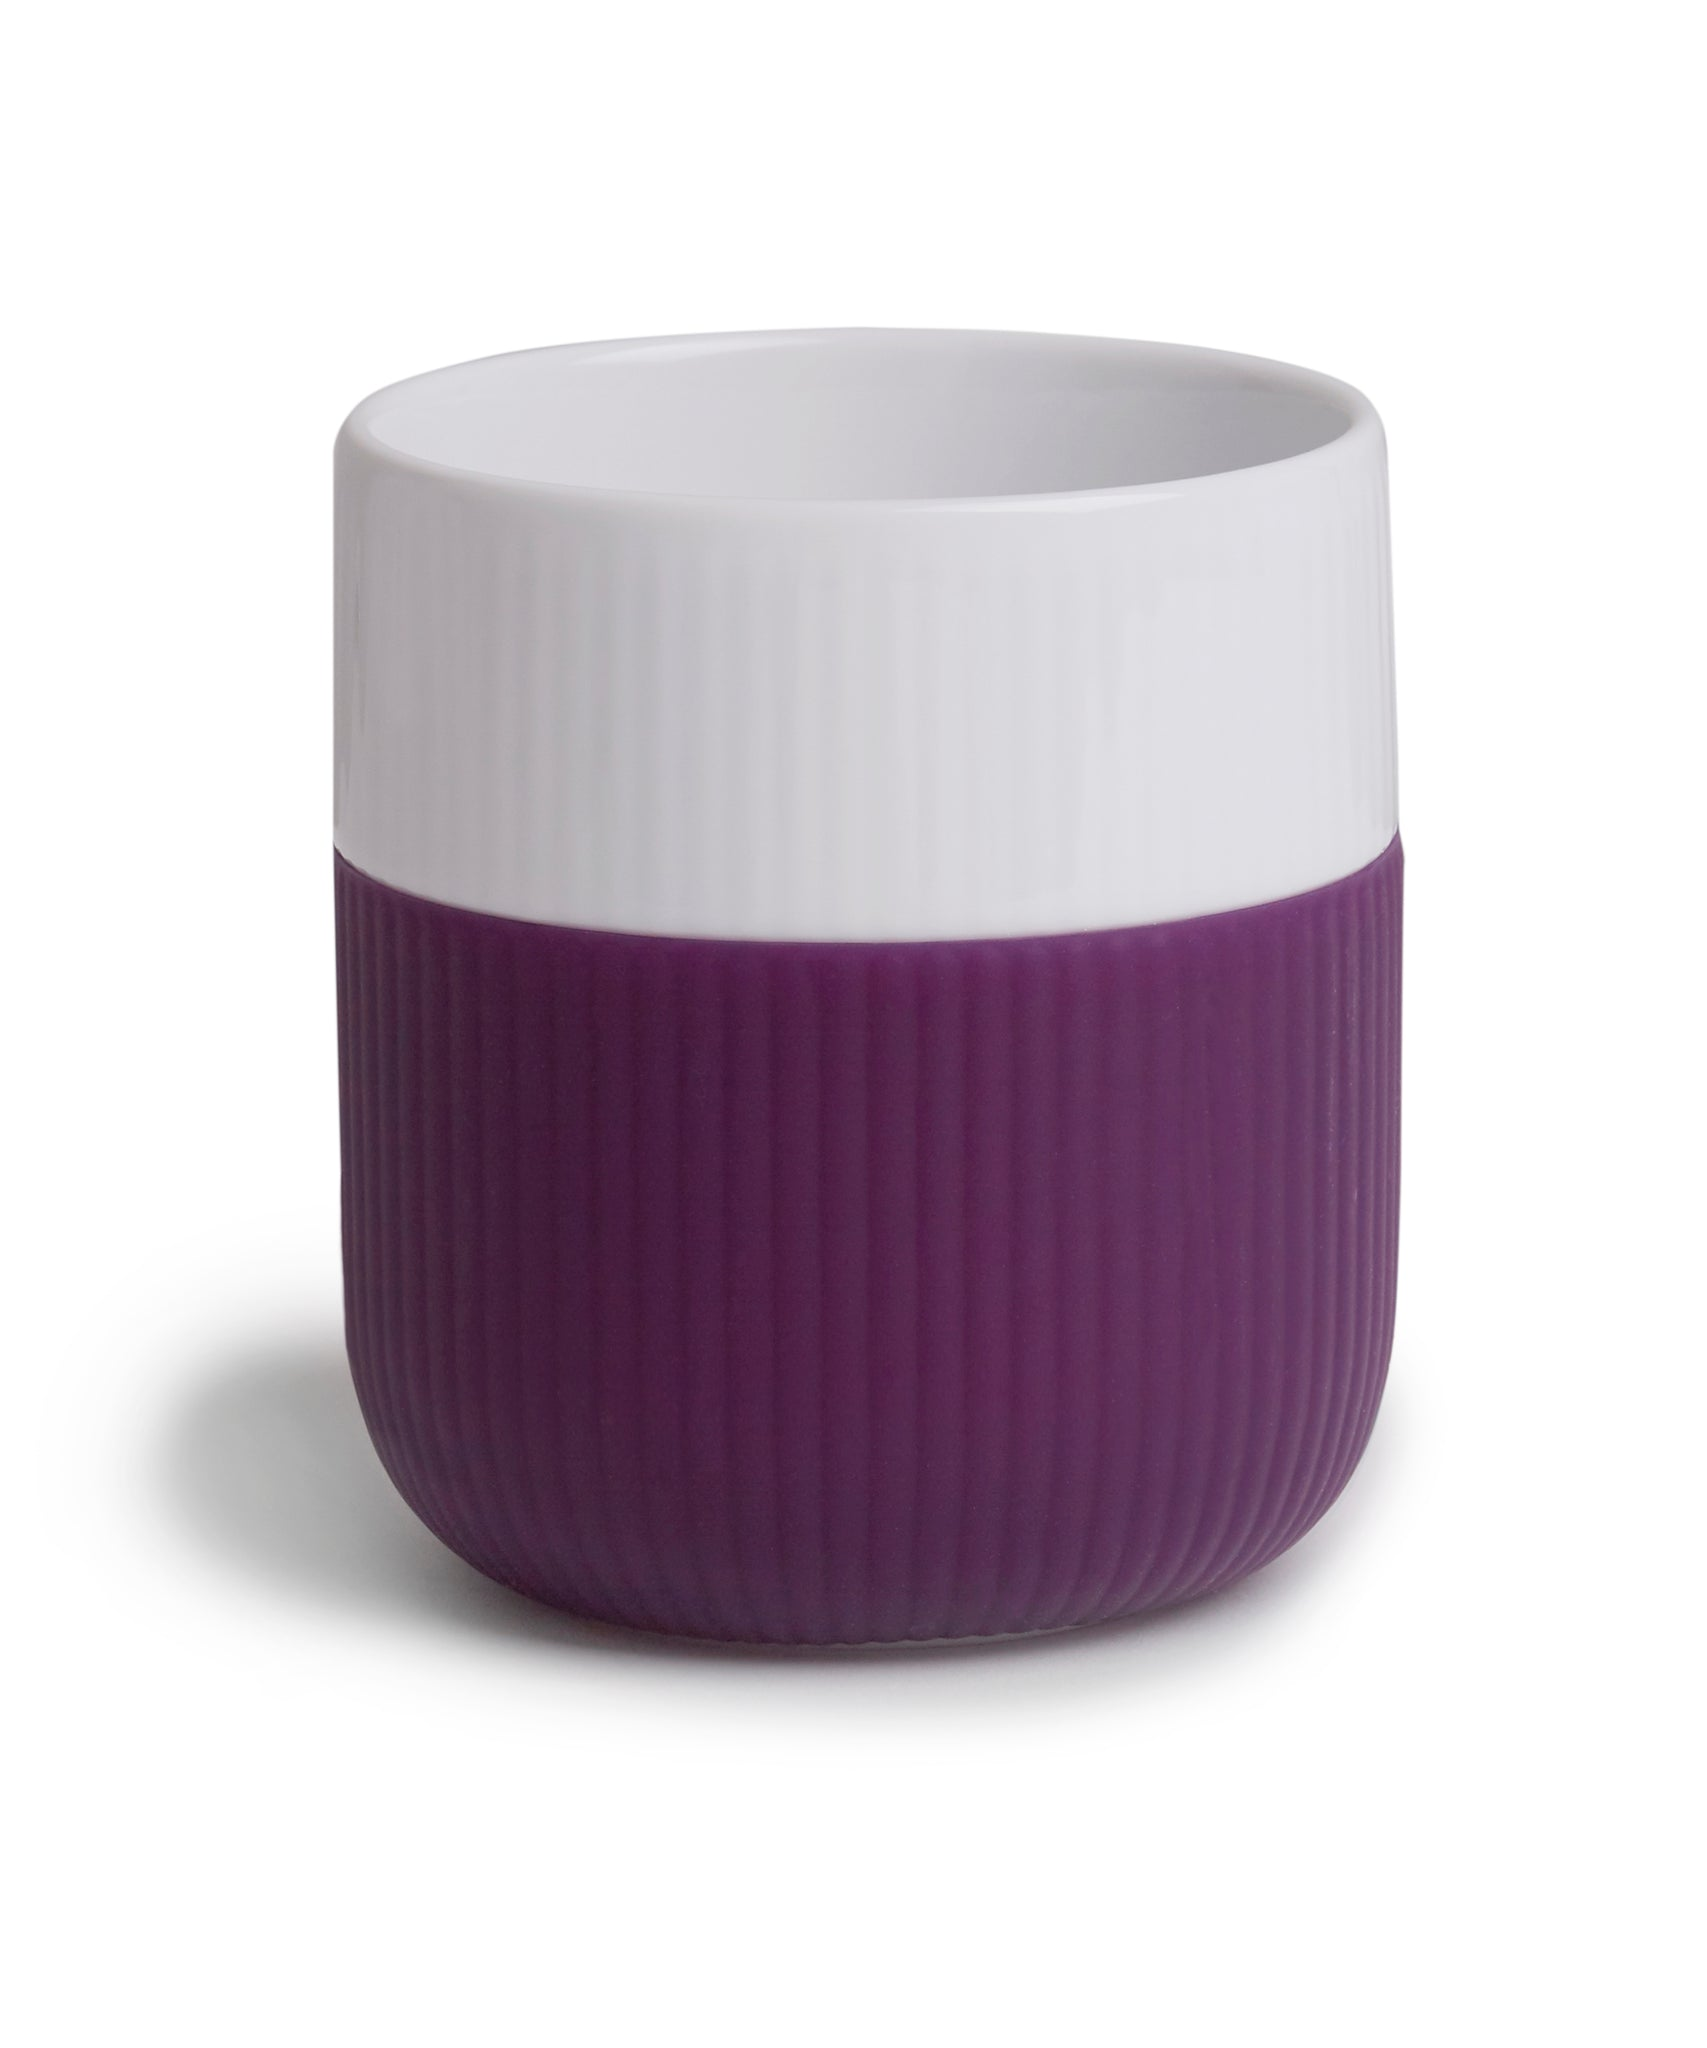 Fluted Contrast Mug (Aubergine) by Royal Copenhagen